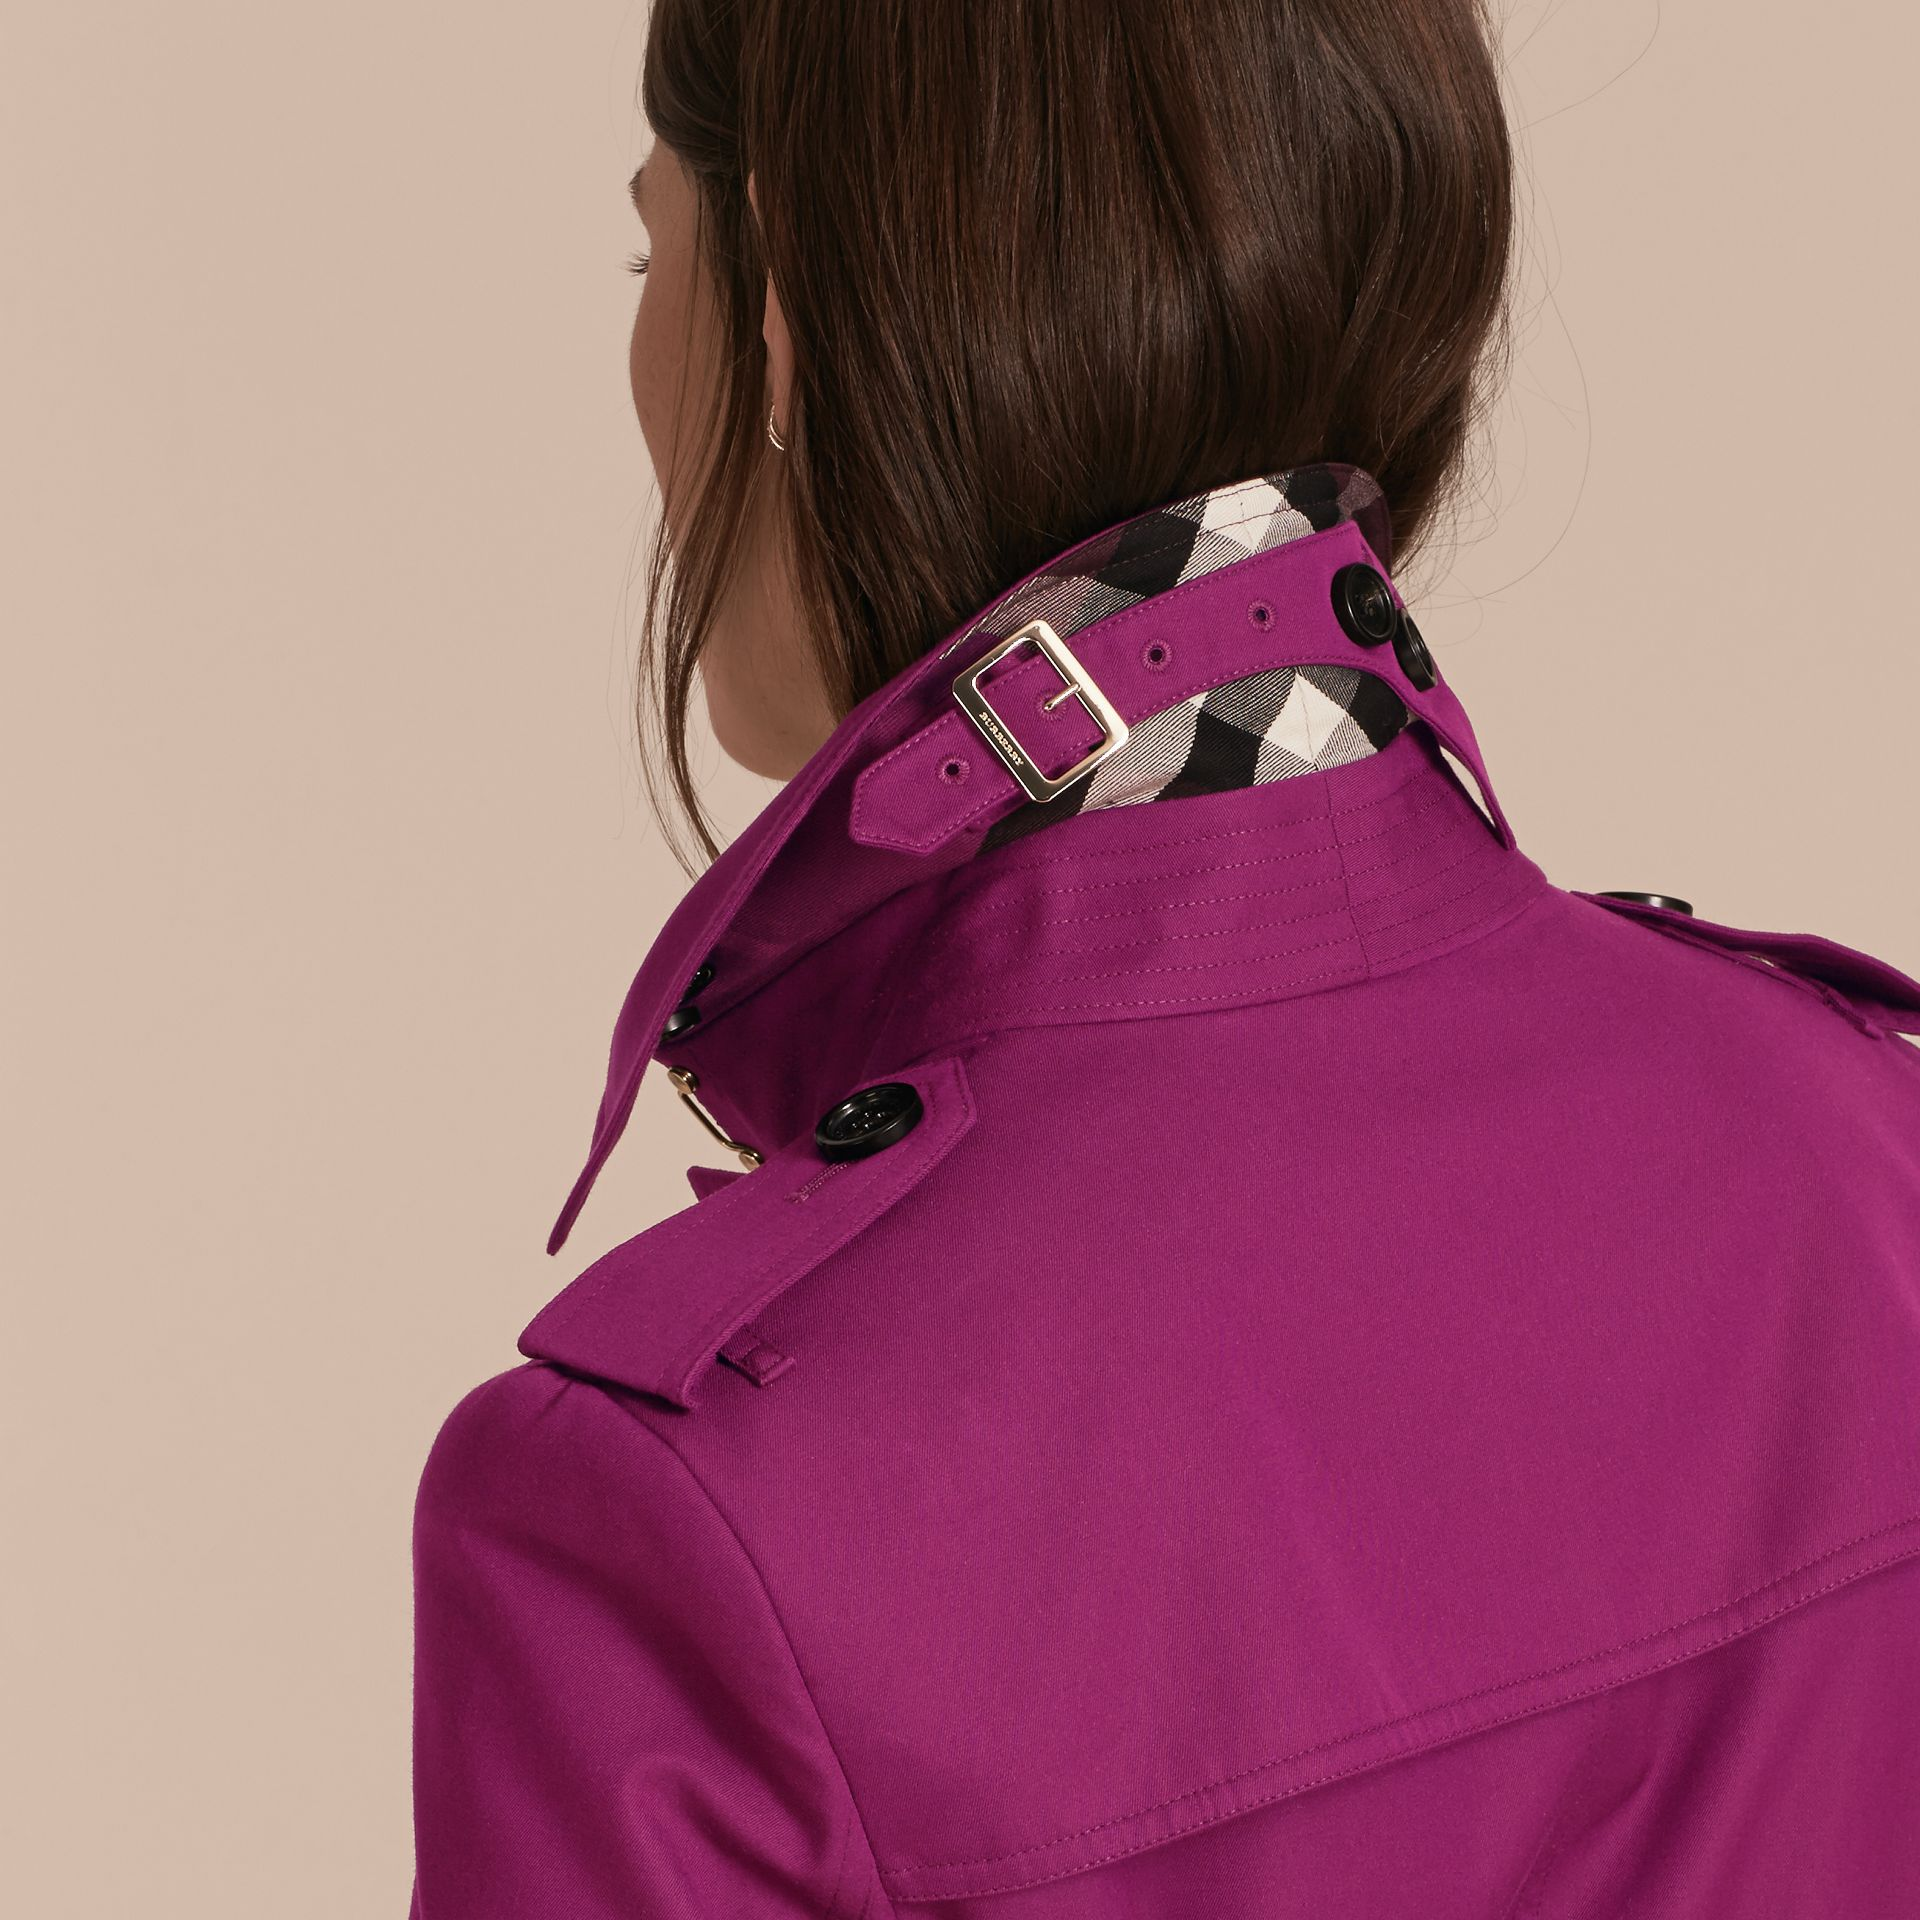 Single-breasted Trench Coat with Metal Buckle Detail Magenta Pink - gallery image 6